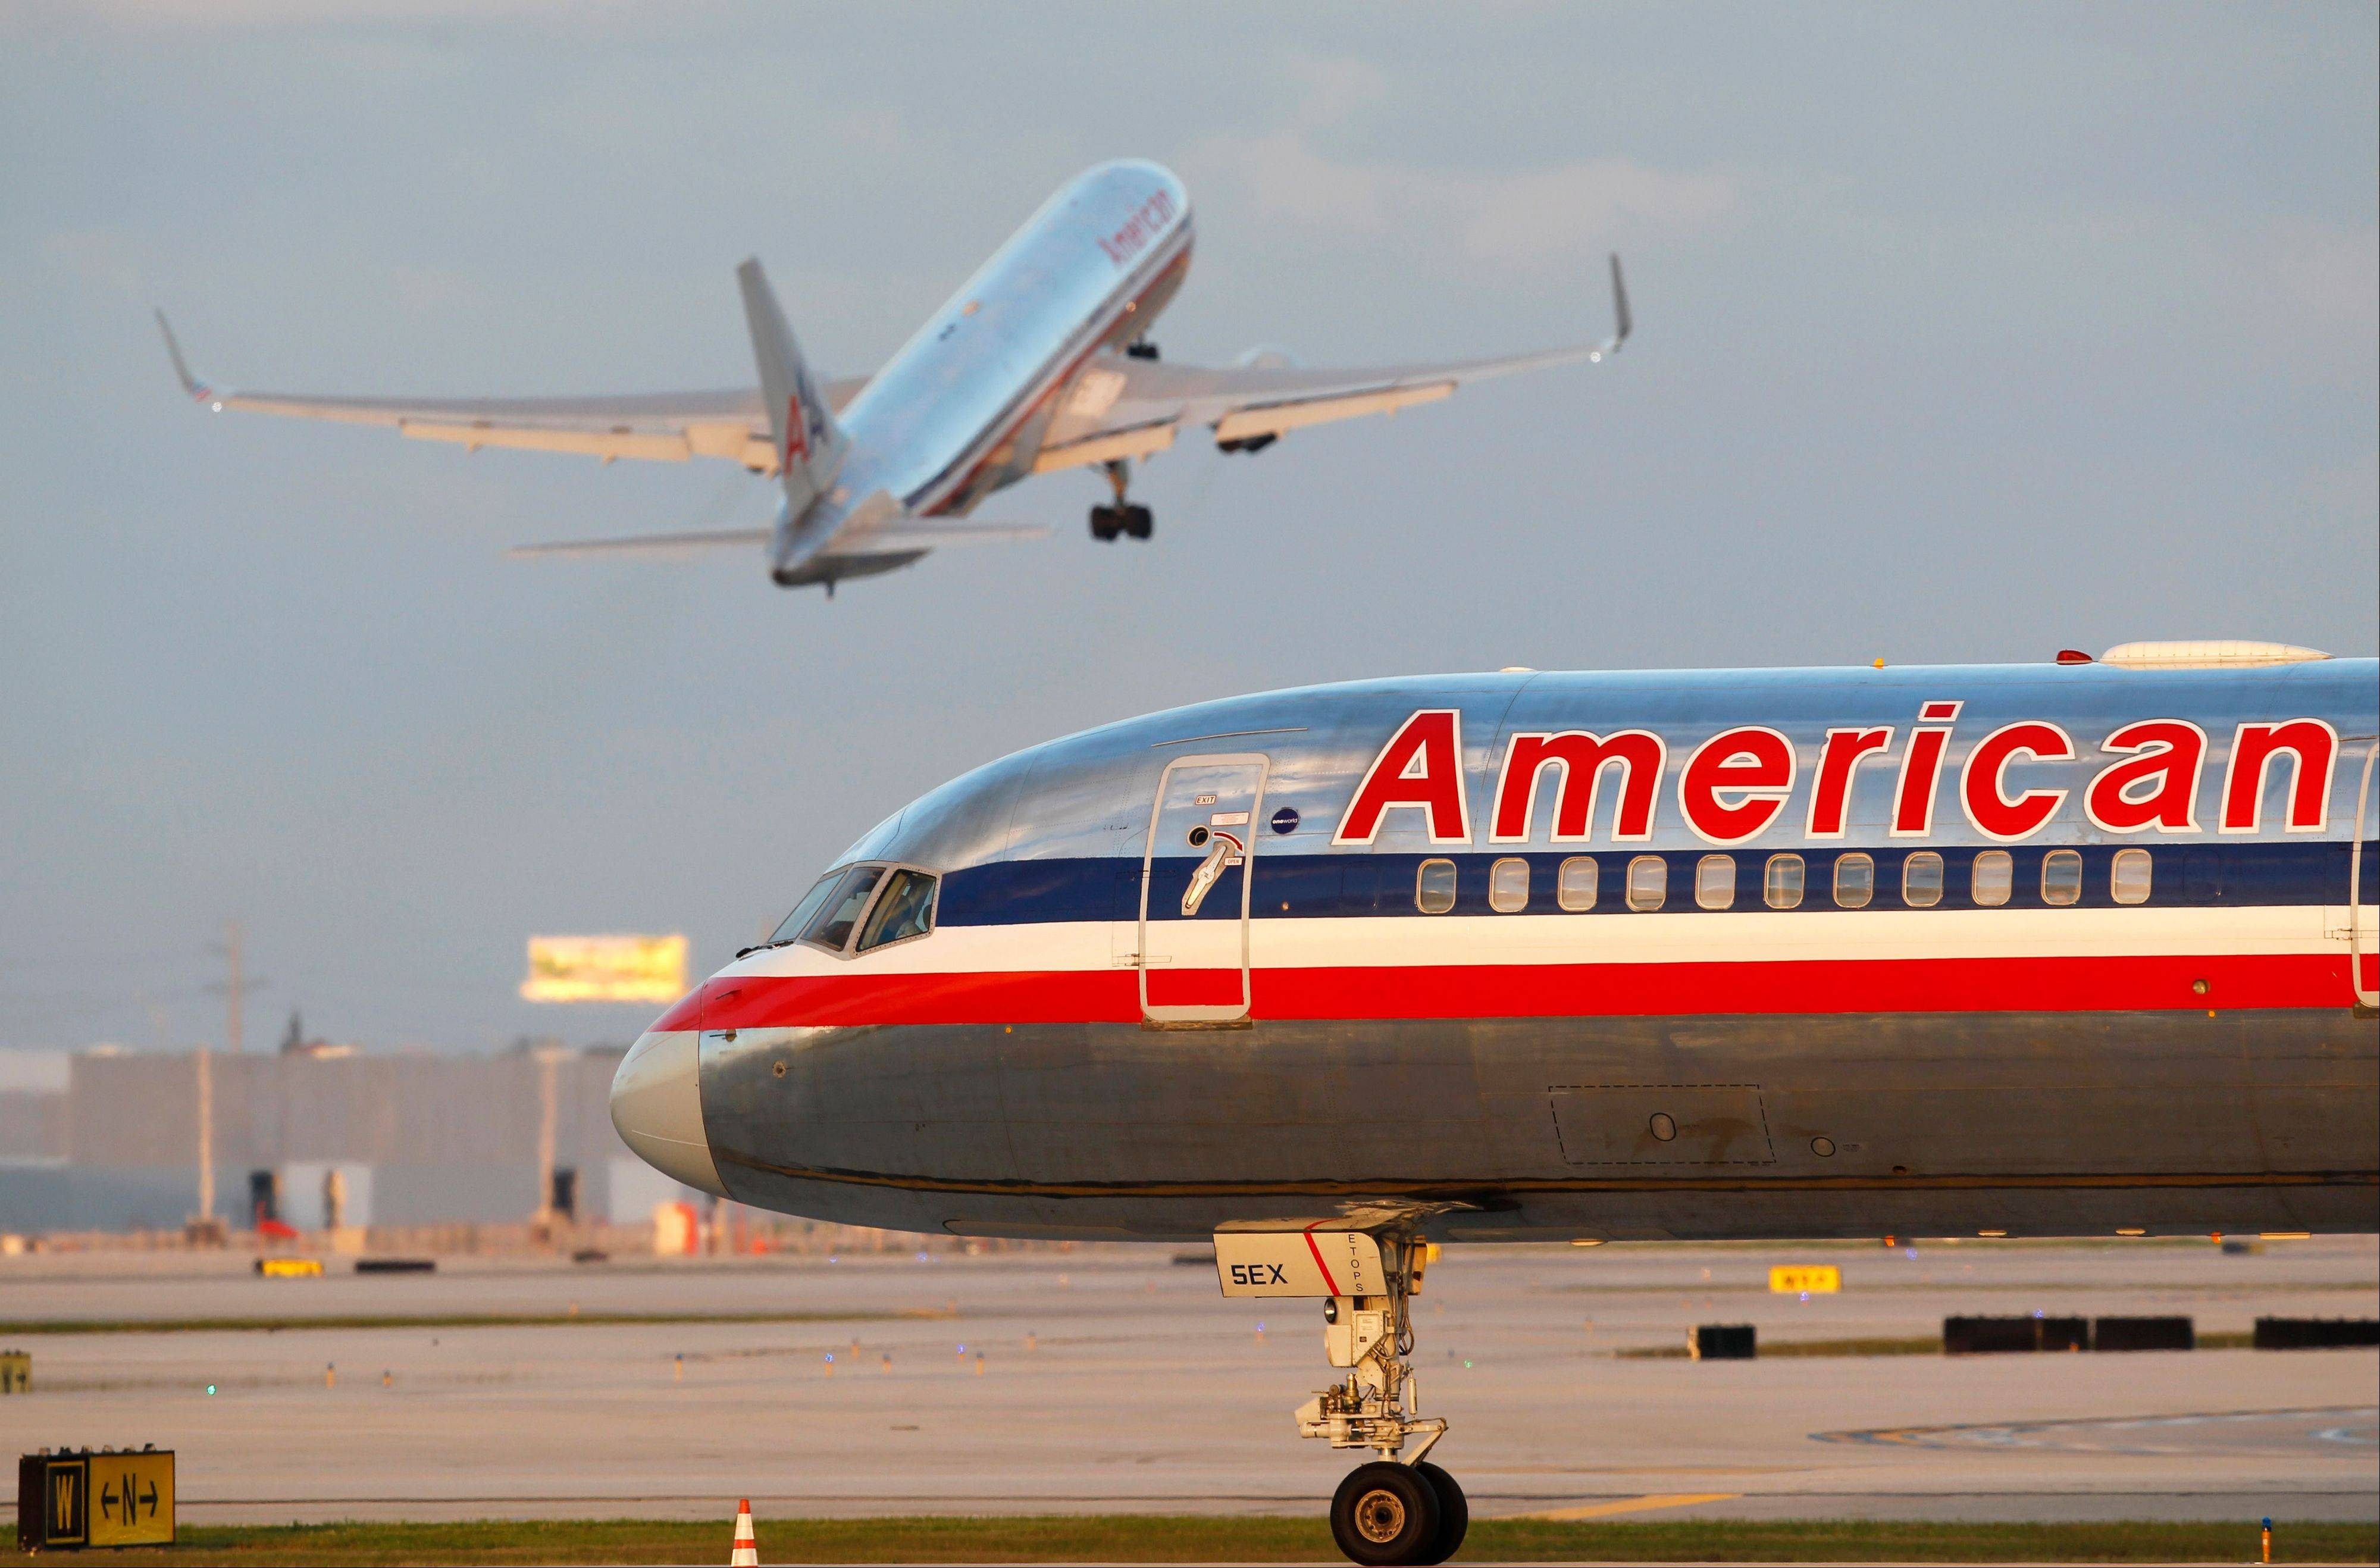 Associated Press American Airlines parent company AMR says Wednesday, Oct. 17, 2012, it lost $238 million in the third-quarter on employee severance costs and other charges related to its bankruptcy. Without those charges, the Fort Worth, Texas, company would have posted an operating profit as it paid less for fuel and benefited from a partnership that boosted traffic overseas.